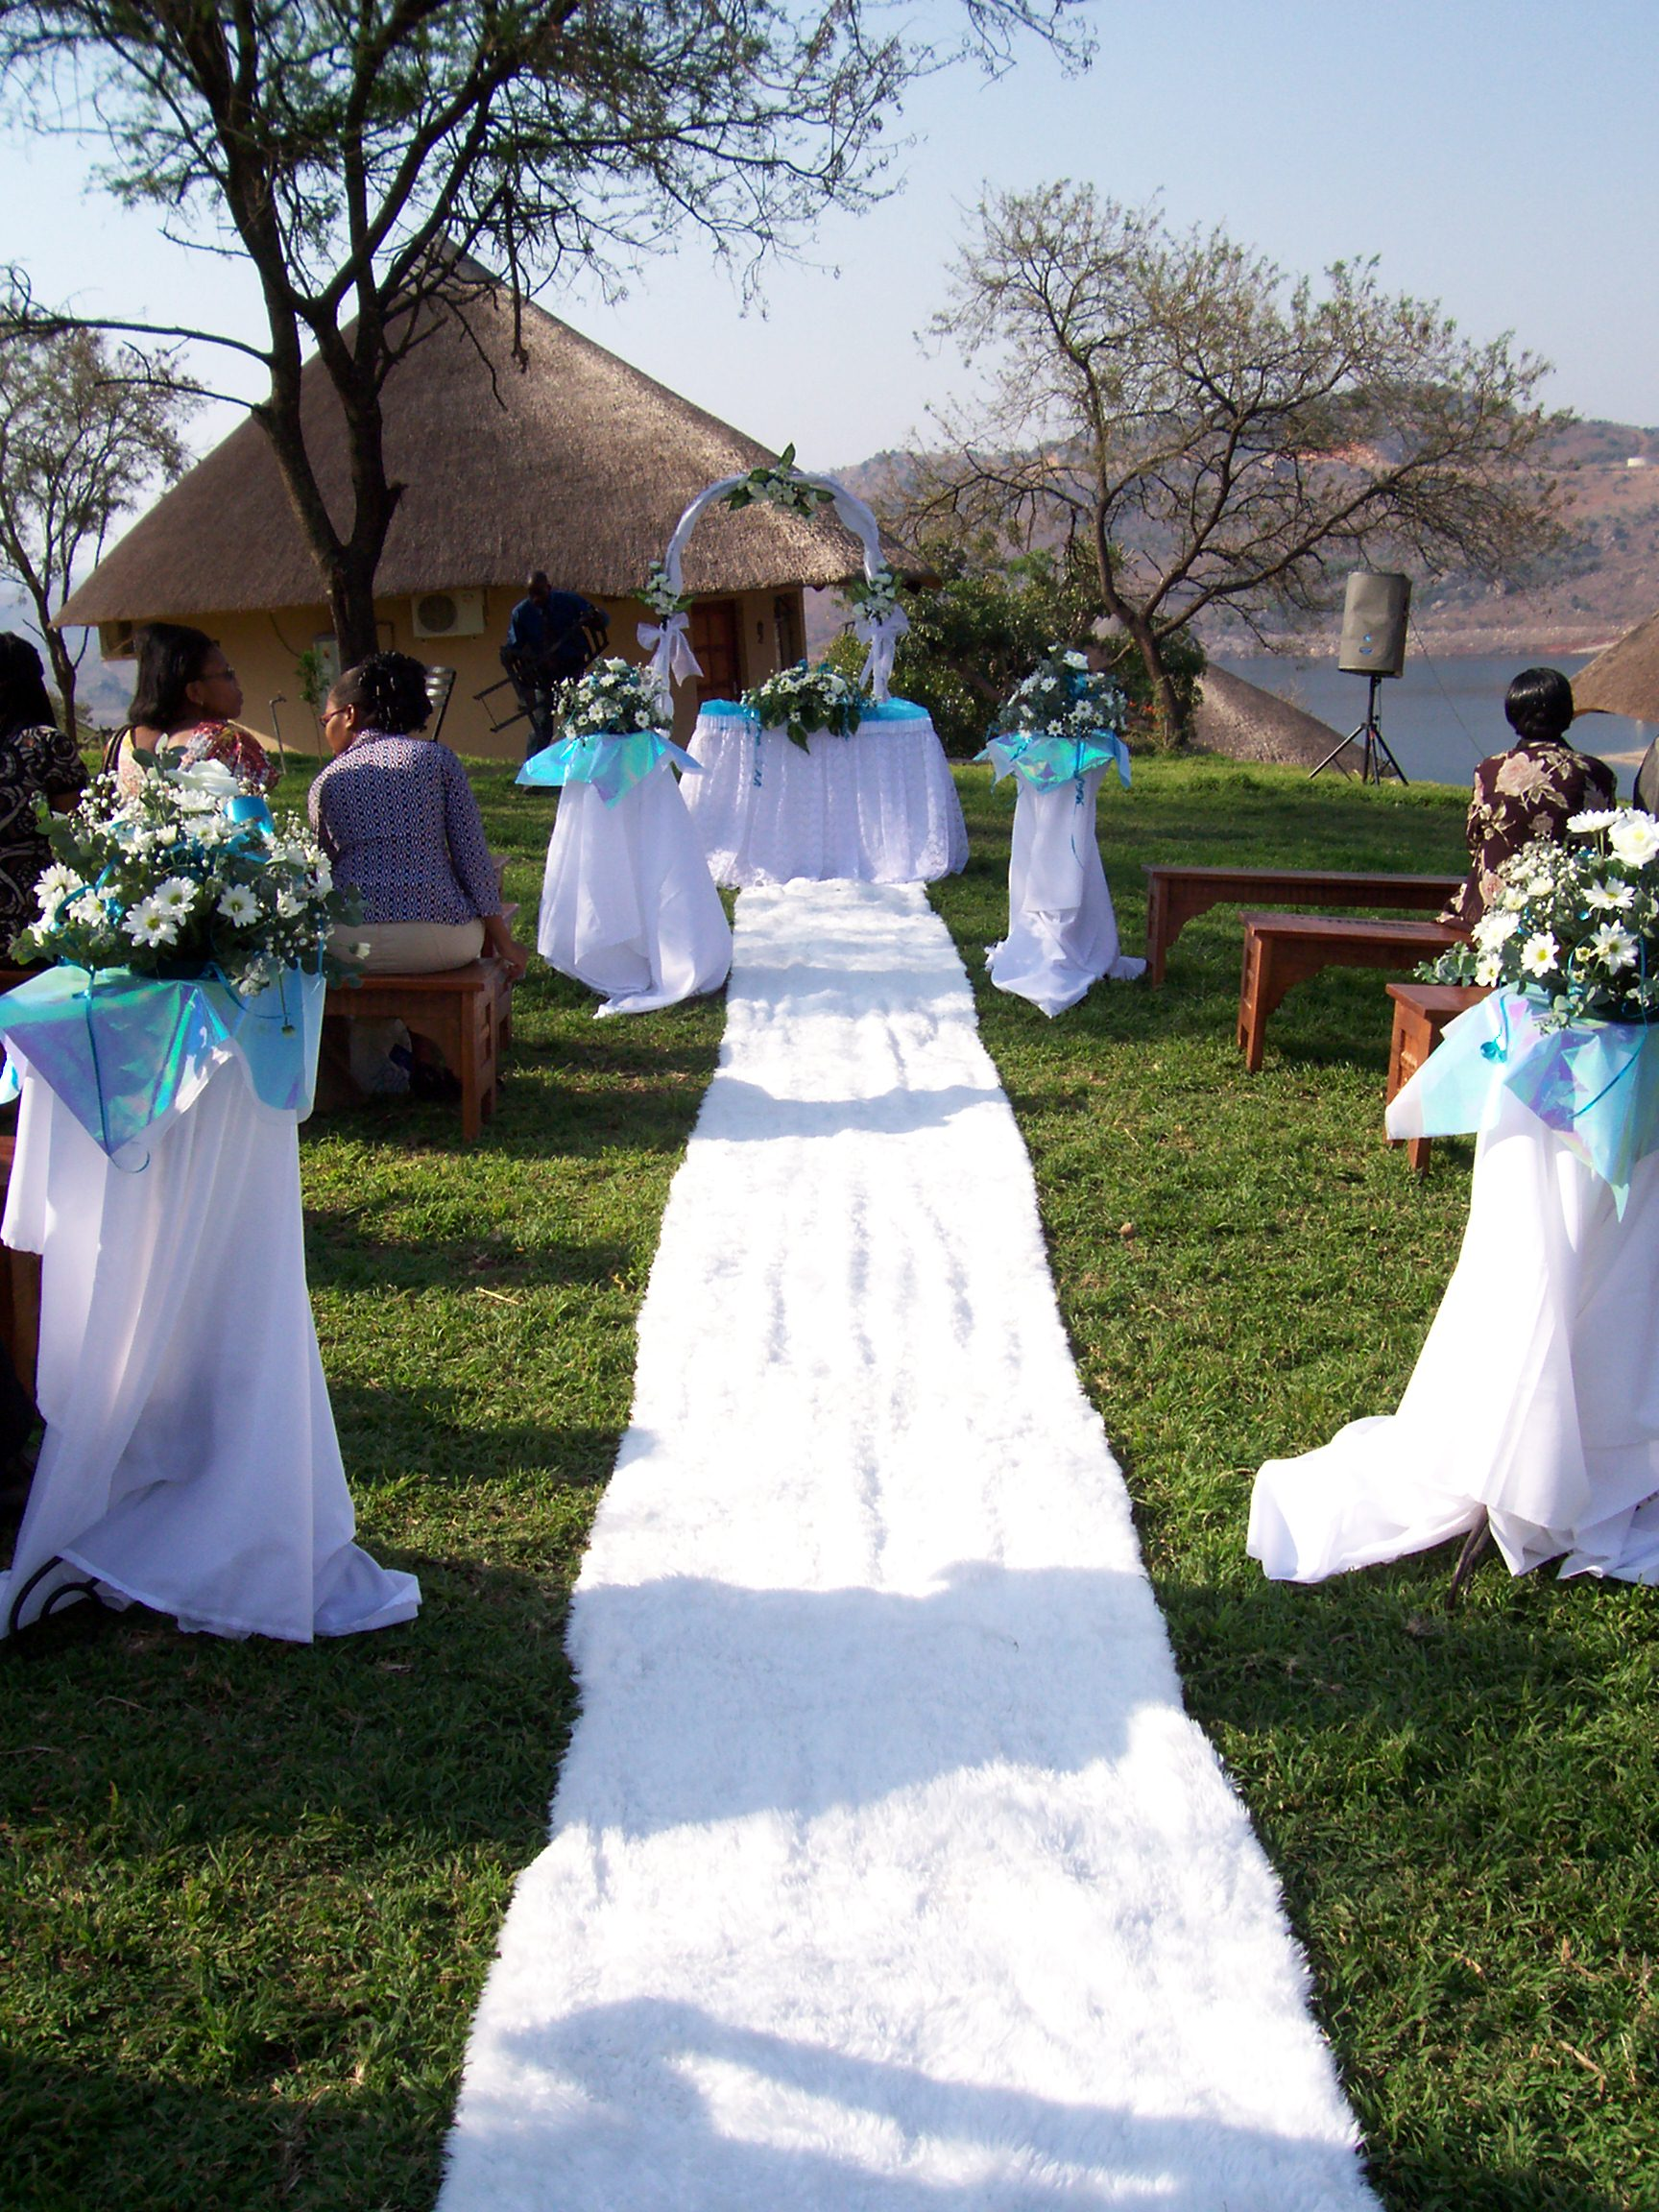 Wedding at Maguga Lodge in Swaziland